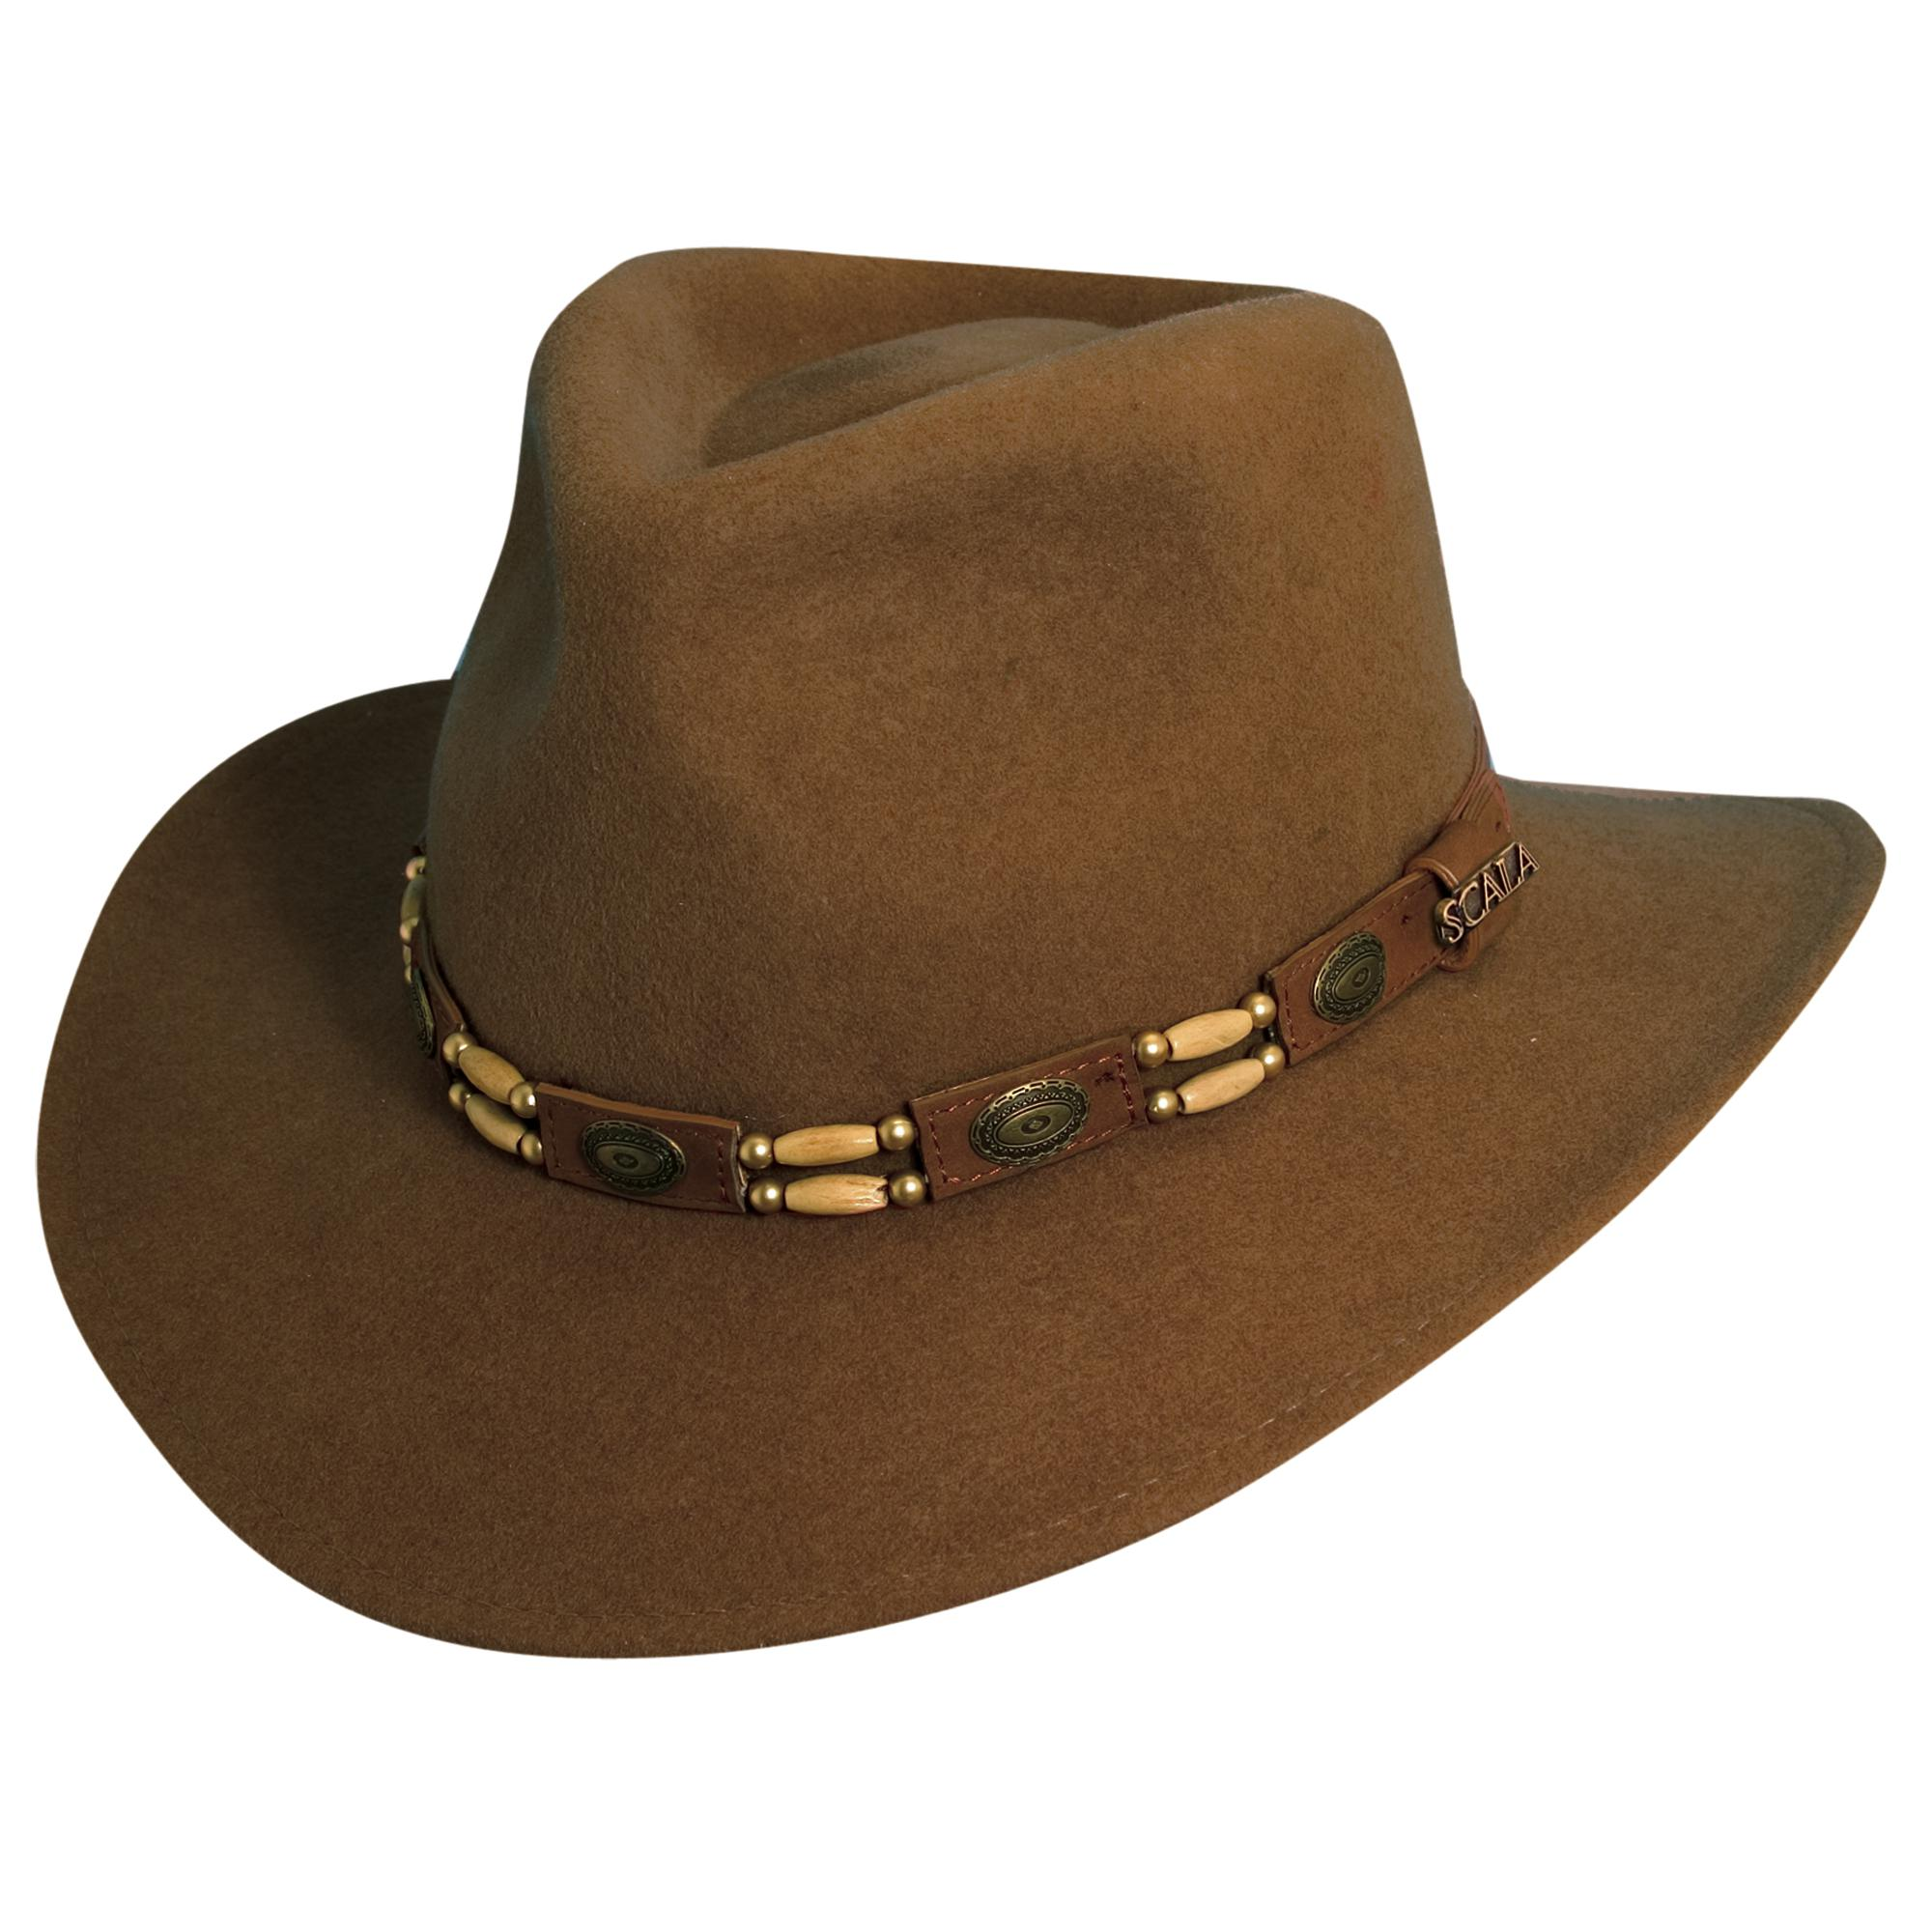 ac2842ea Scala Western Style Men's Crushable Wool Felt Outback Hat with Conchos and  Beads